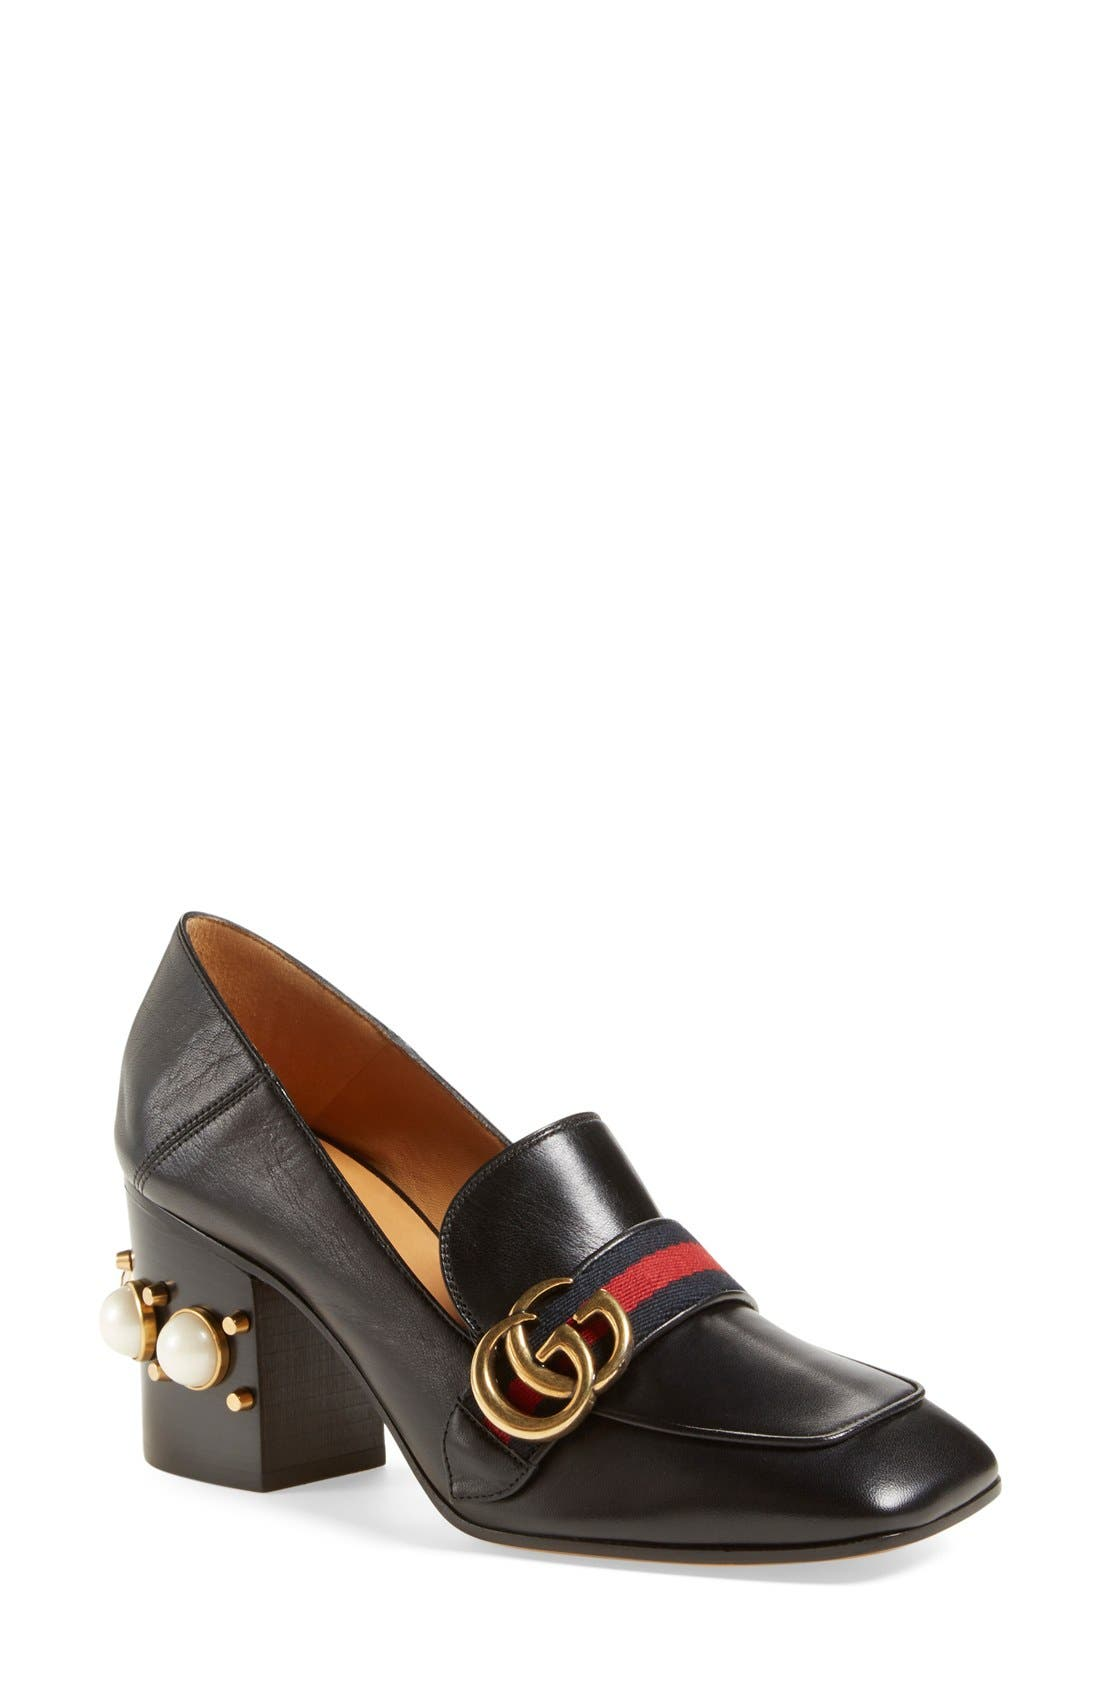 Main Image - Gucci 'Peyton' Square Toe Loafer Pump (Women)